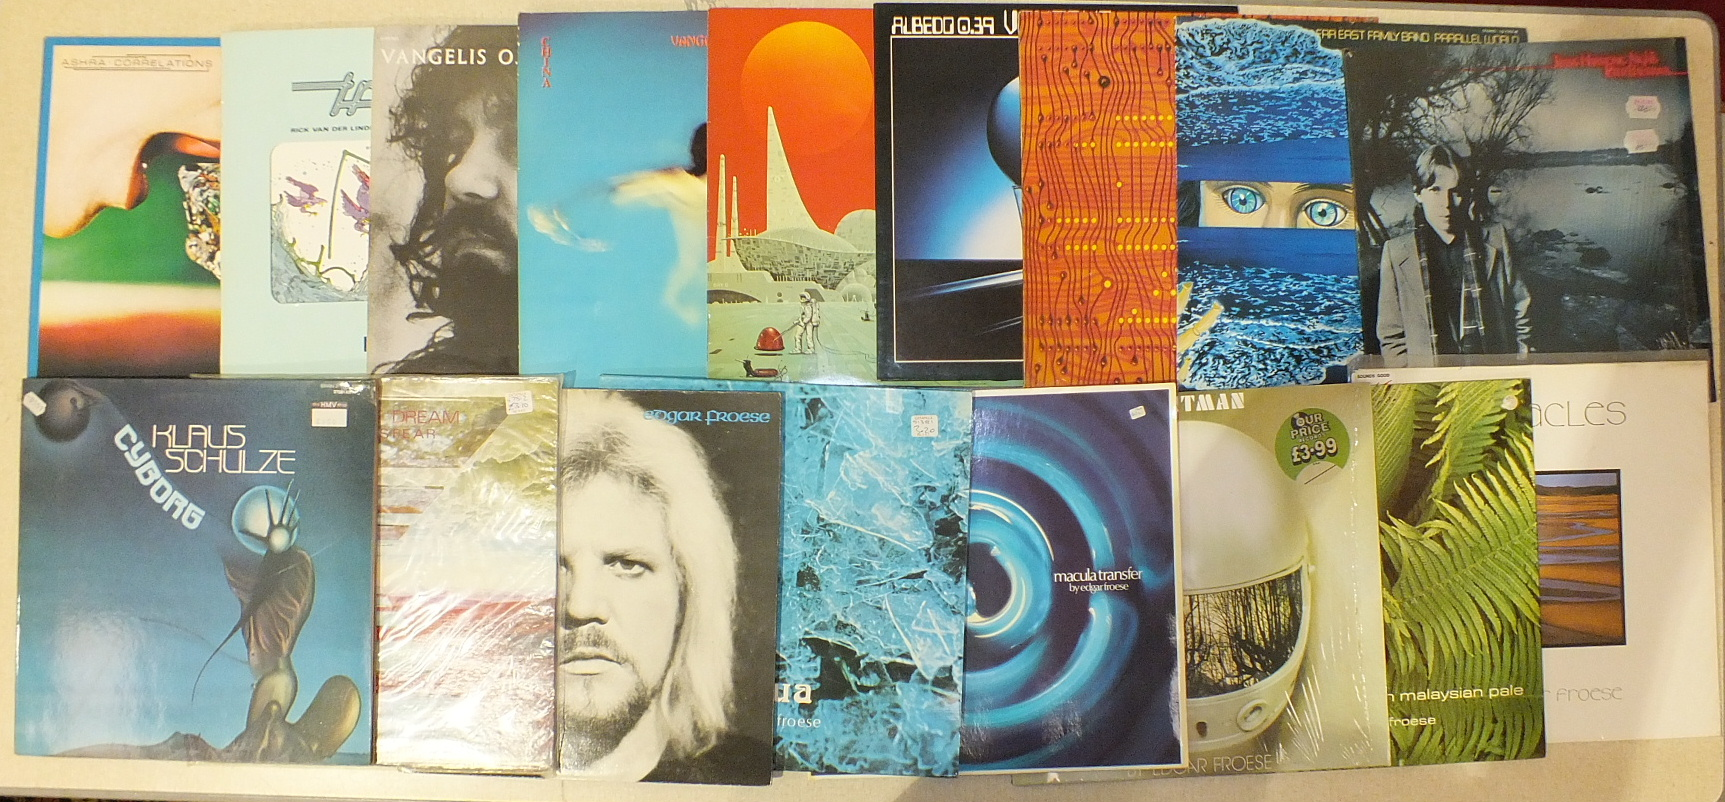 Lot 510 - A collection of LP's by Tangerine Dream, Edgar Froese, Klaus Shulze, Vangelis and others, (25). Some